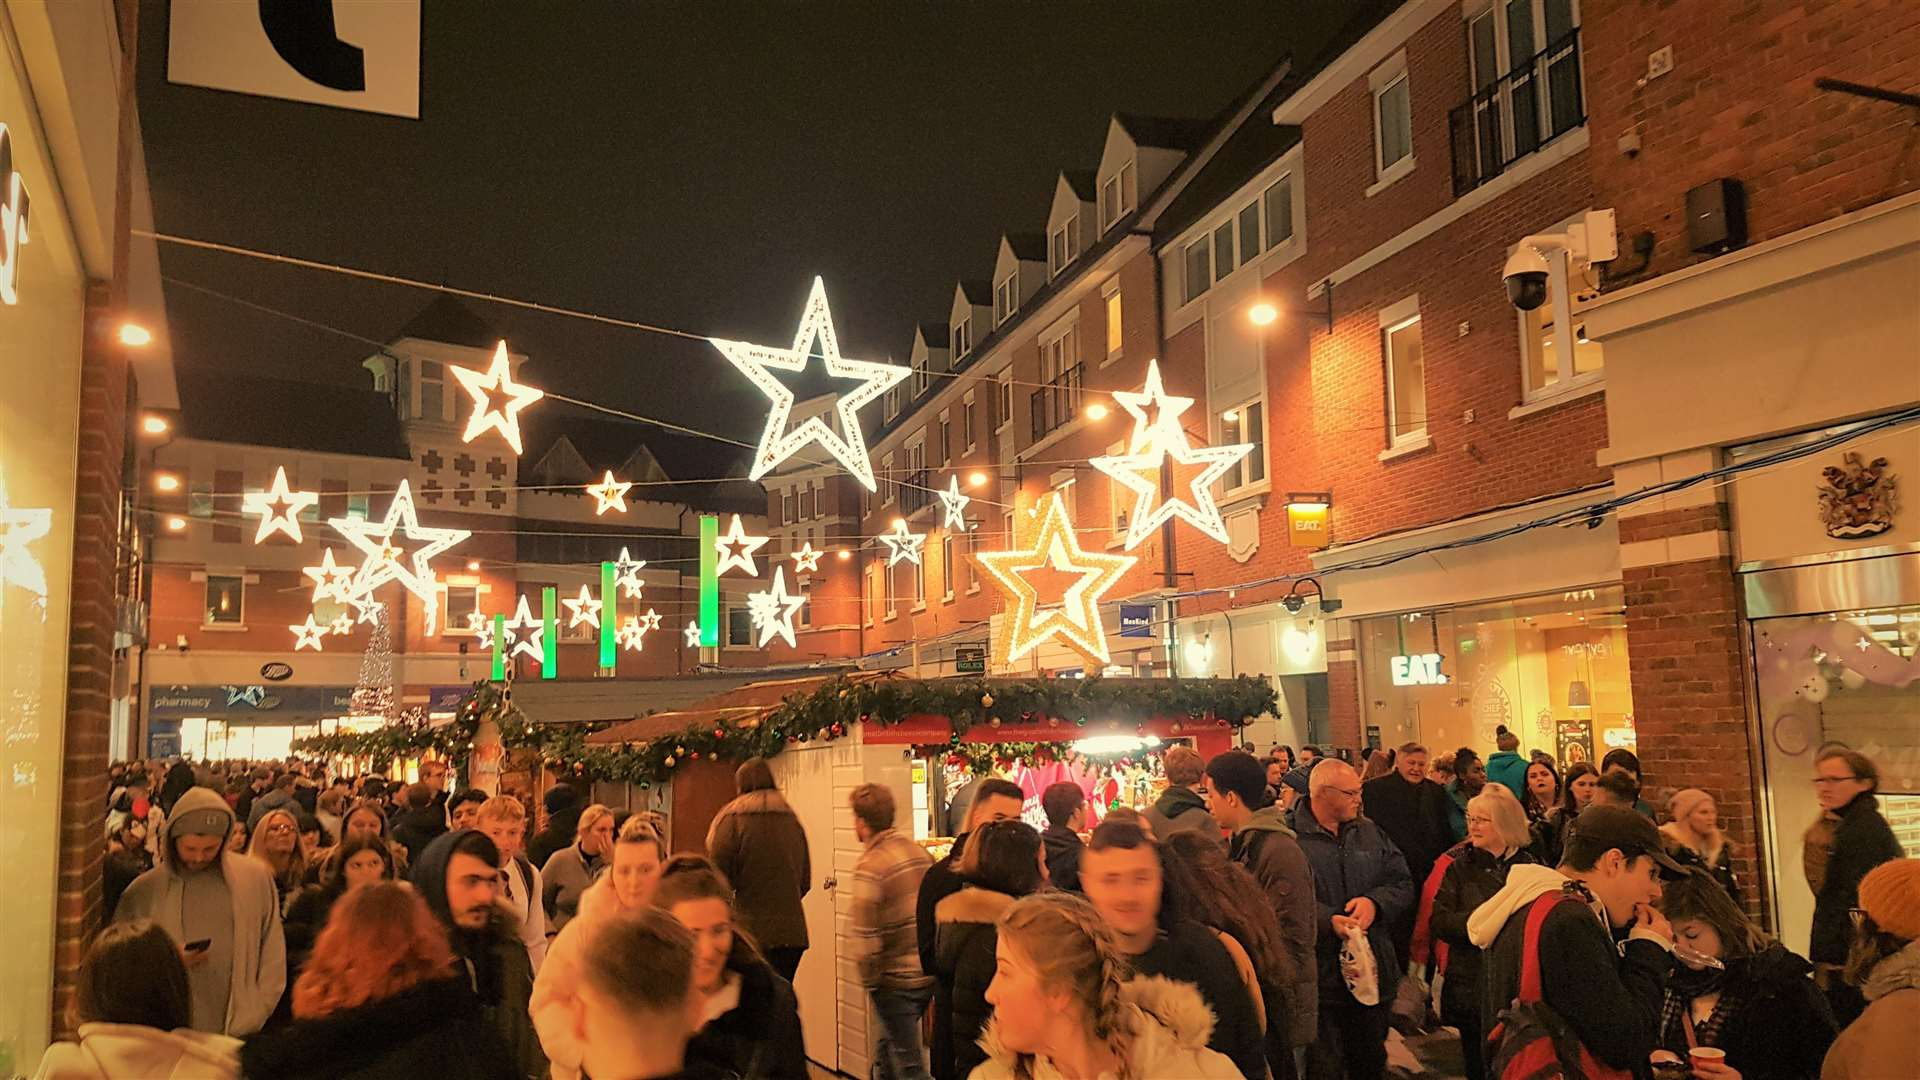 Whitefriars Christmas market in Canterbury last year